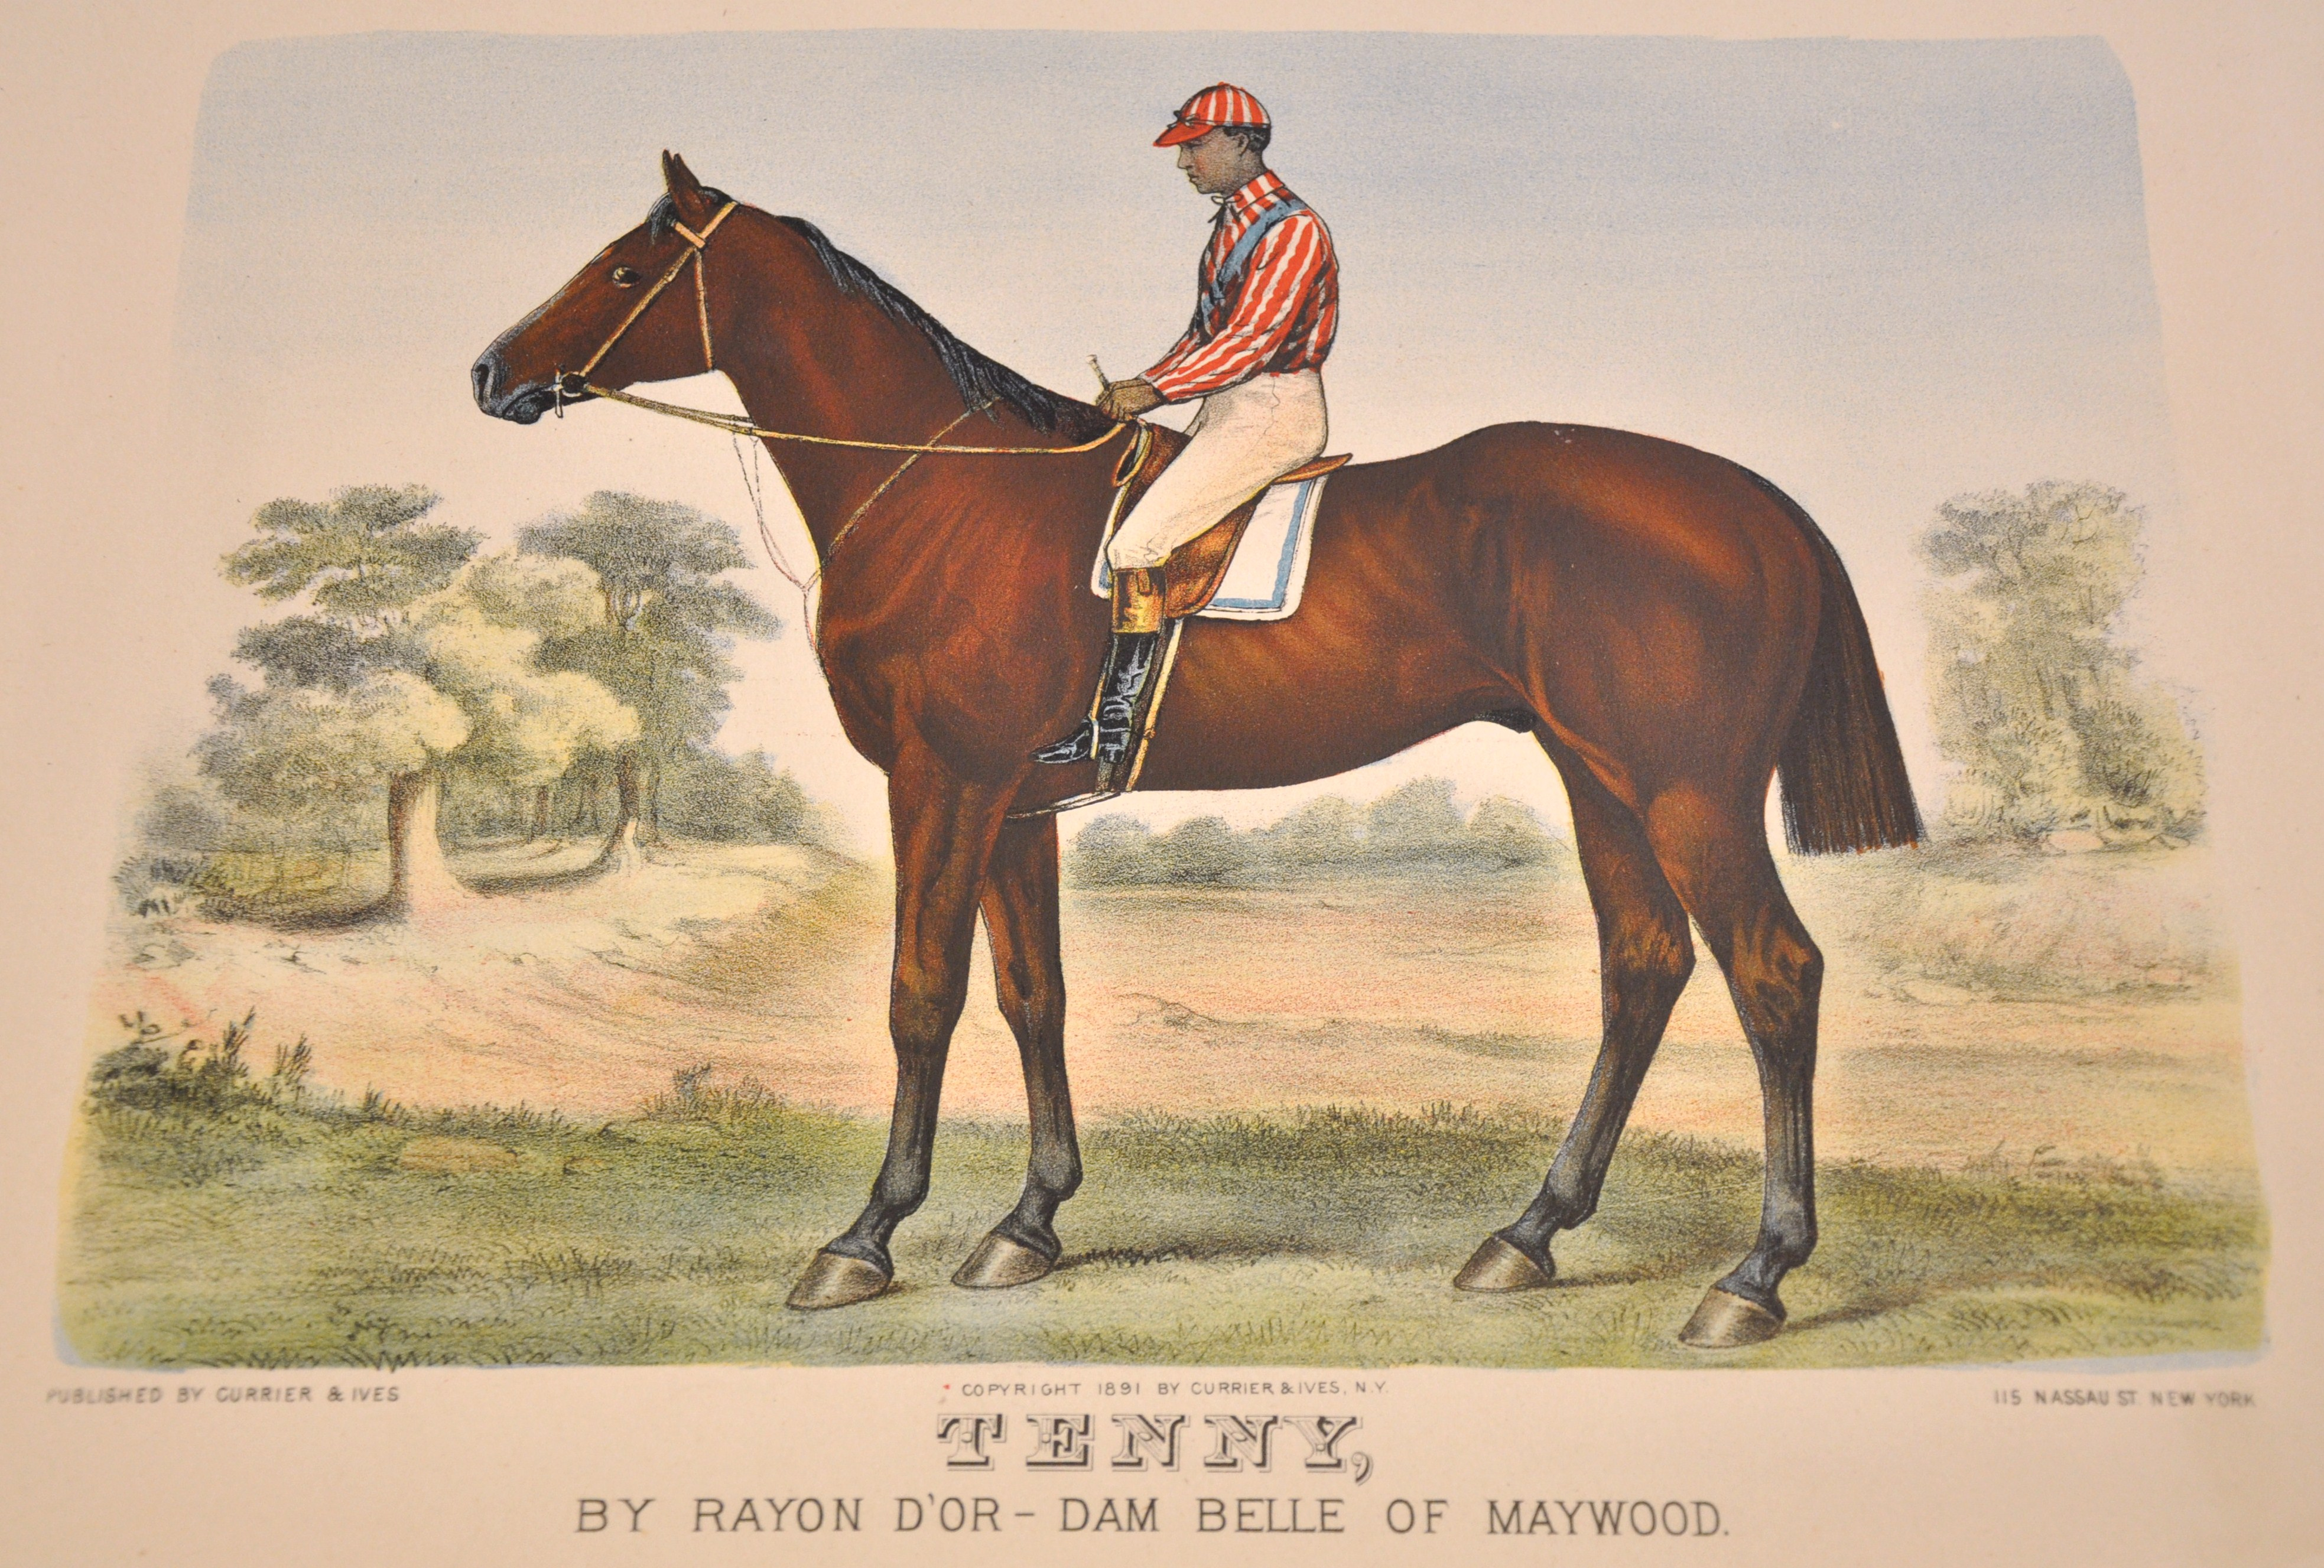 Currier & Ives print of Tenny with jockey (believed to be Shelby Barnes) (Museum Collection)